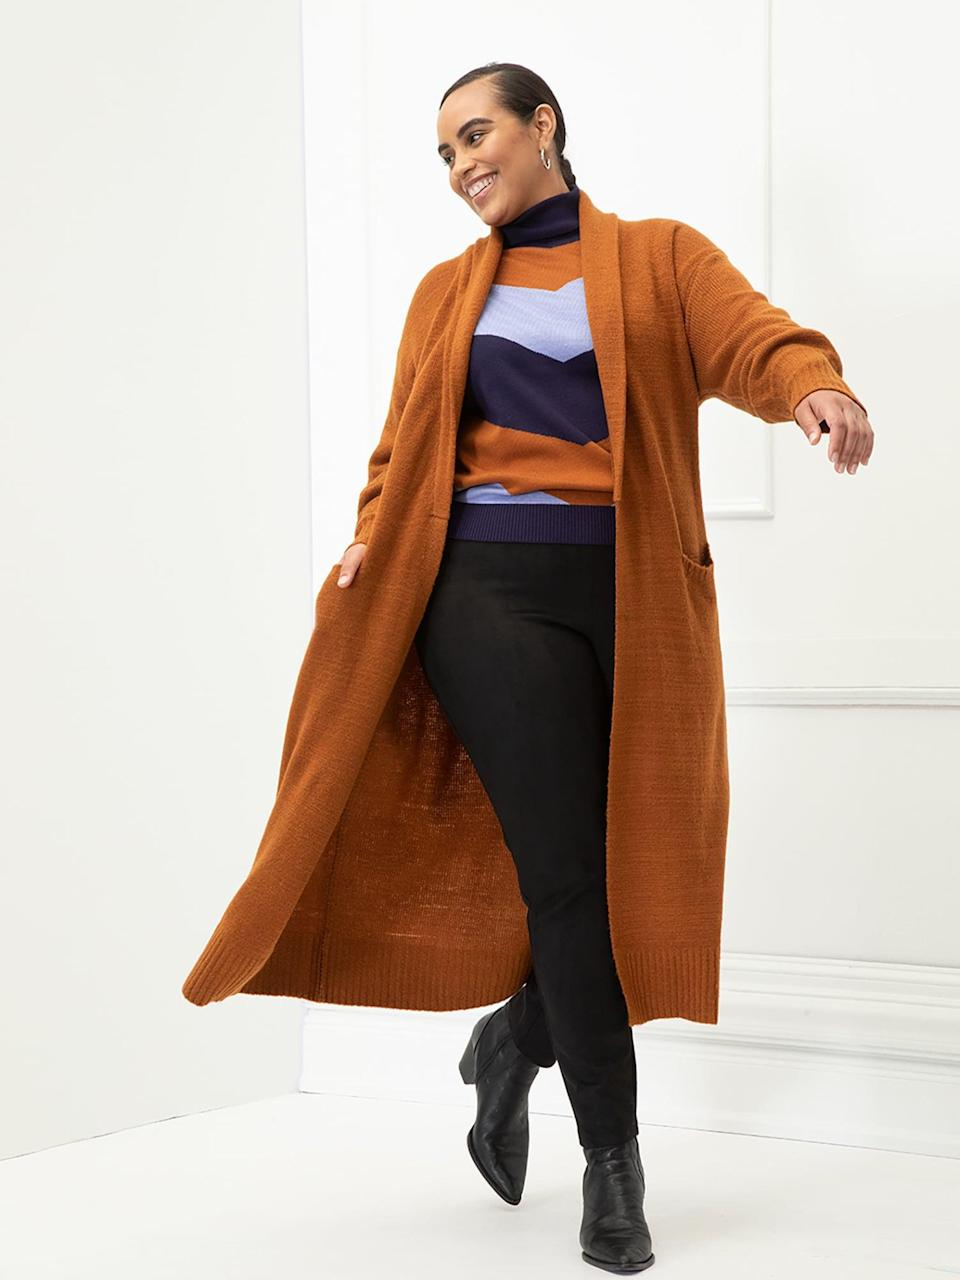 <p>You can't beat the price of this <span>ELOQUII Elements Women's Plus Size Belted Sweater Robe</span> ($40). It's insanely chic and cozy, perfect for fall activities like apple picking.</p>